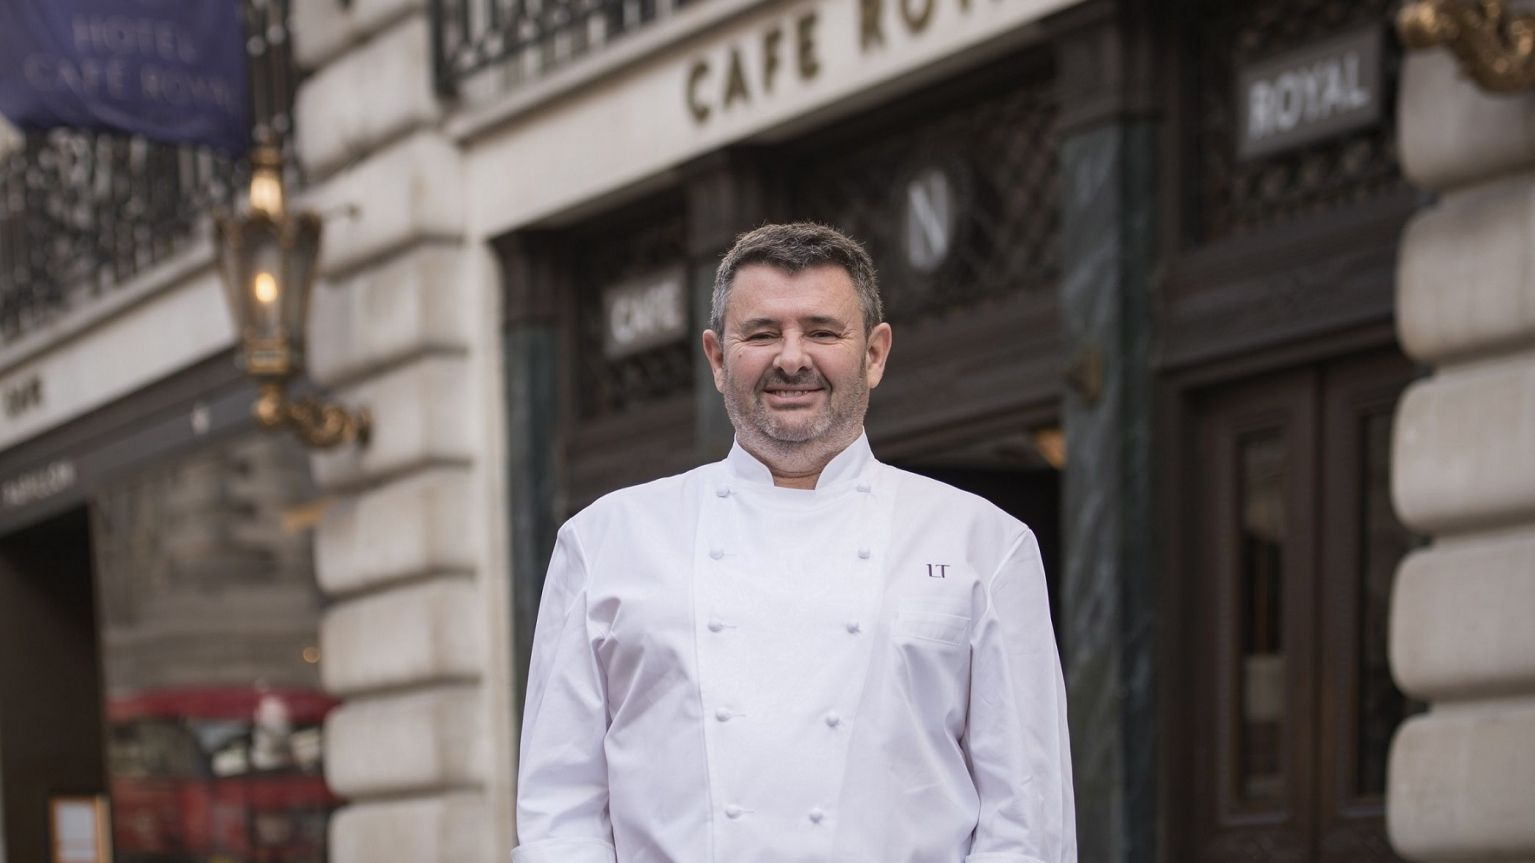 laurent tourondel at hotel cafe royal london new restaurant opening 2018